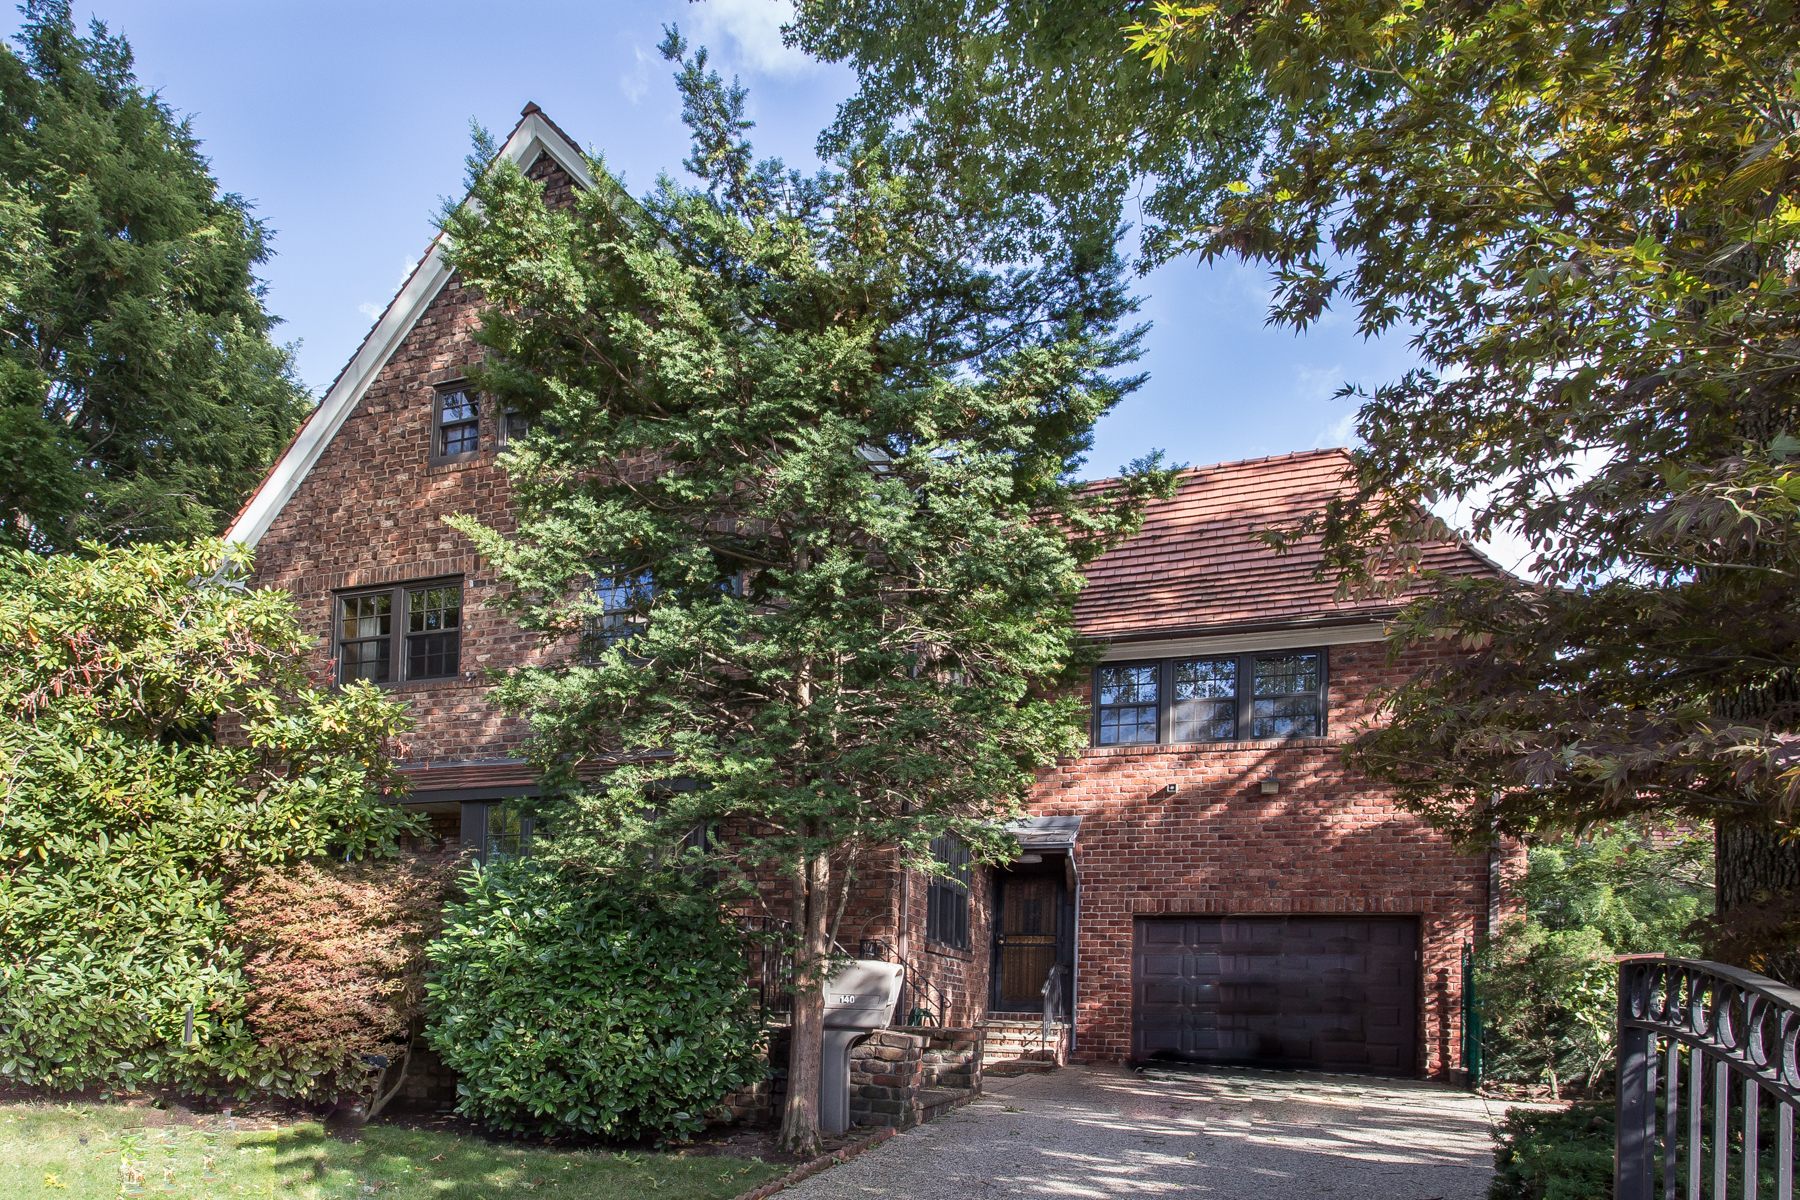 """Single Family Home for Sale at """"TAPESTRY BRICK MASTERPIECE"""" 140 Continental Avenue, Forest Hills Gardens, Forest Hills, New York 11375 United States"""